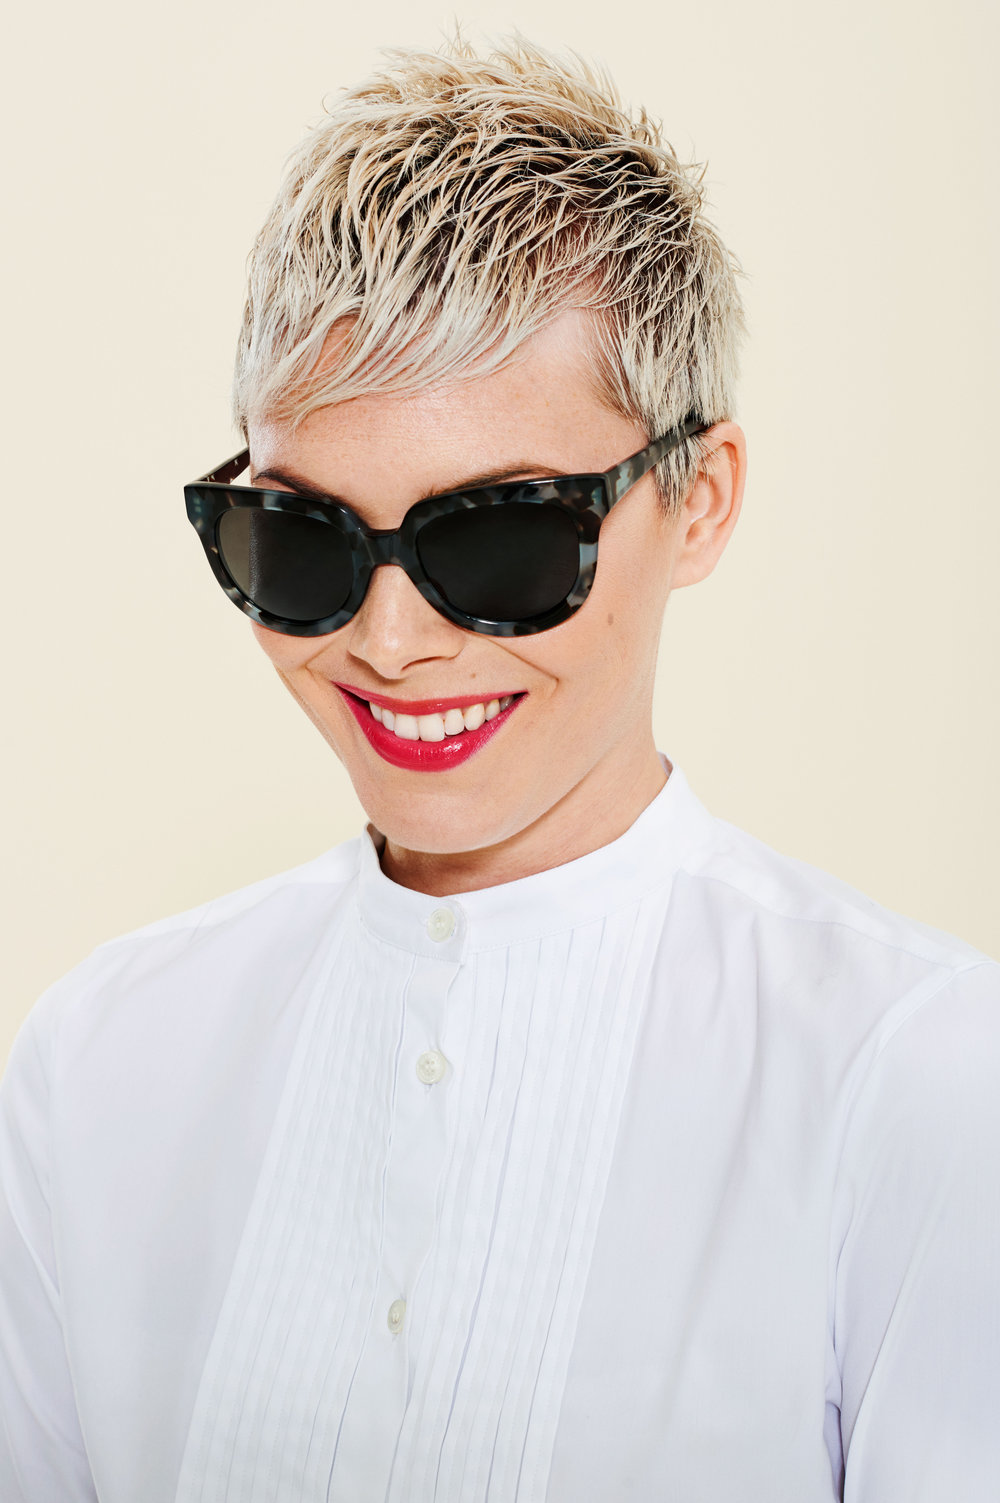 sunglasses-lipsticks-10.w4500.h6760.jpg